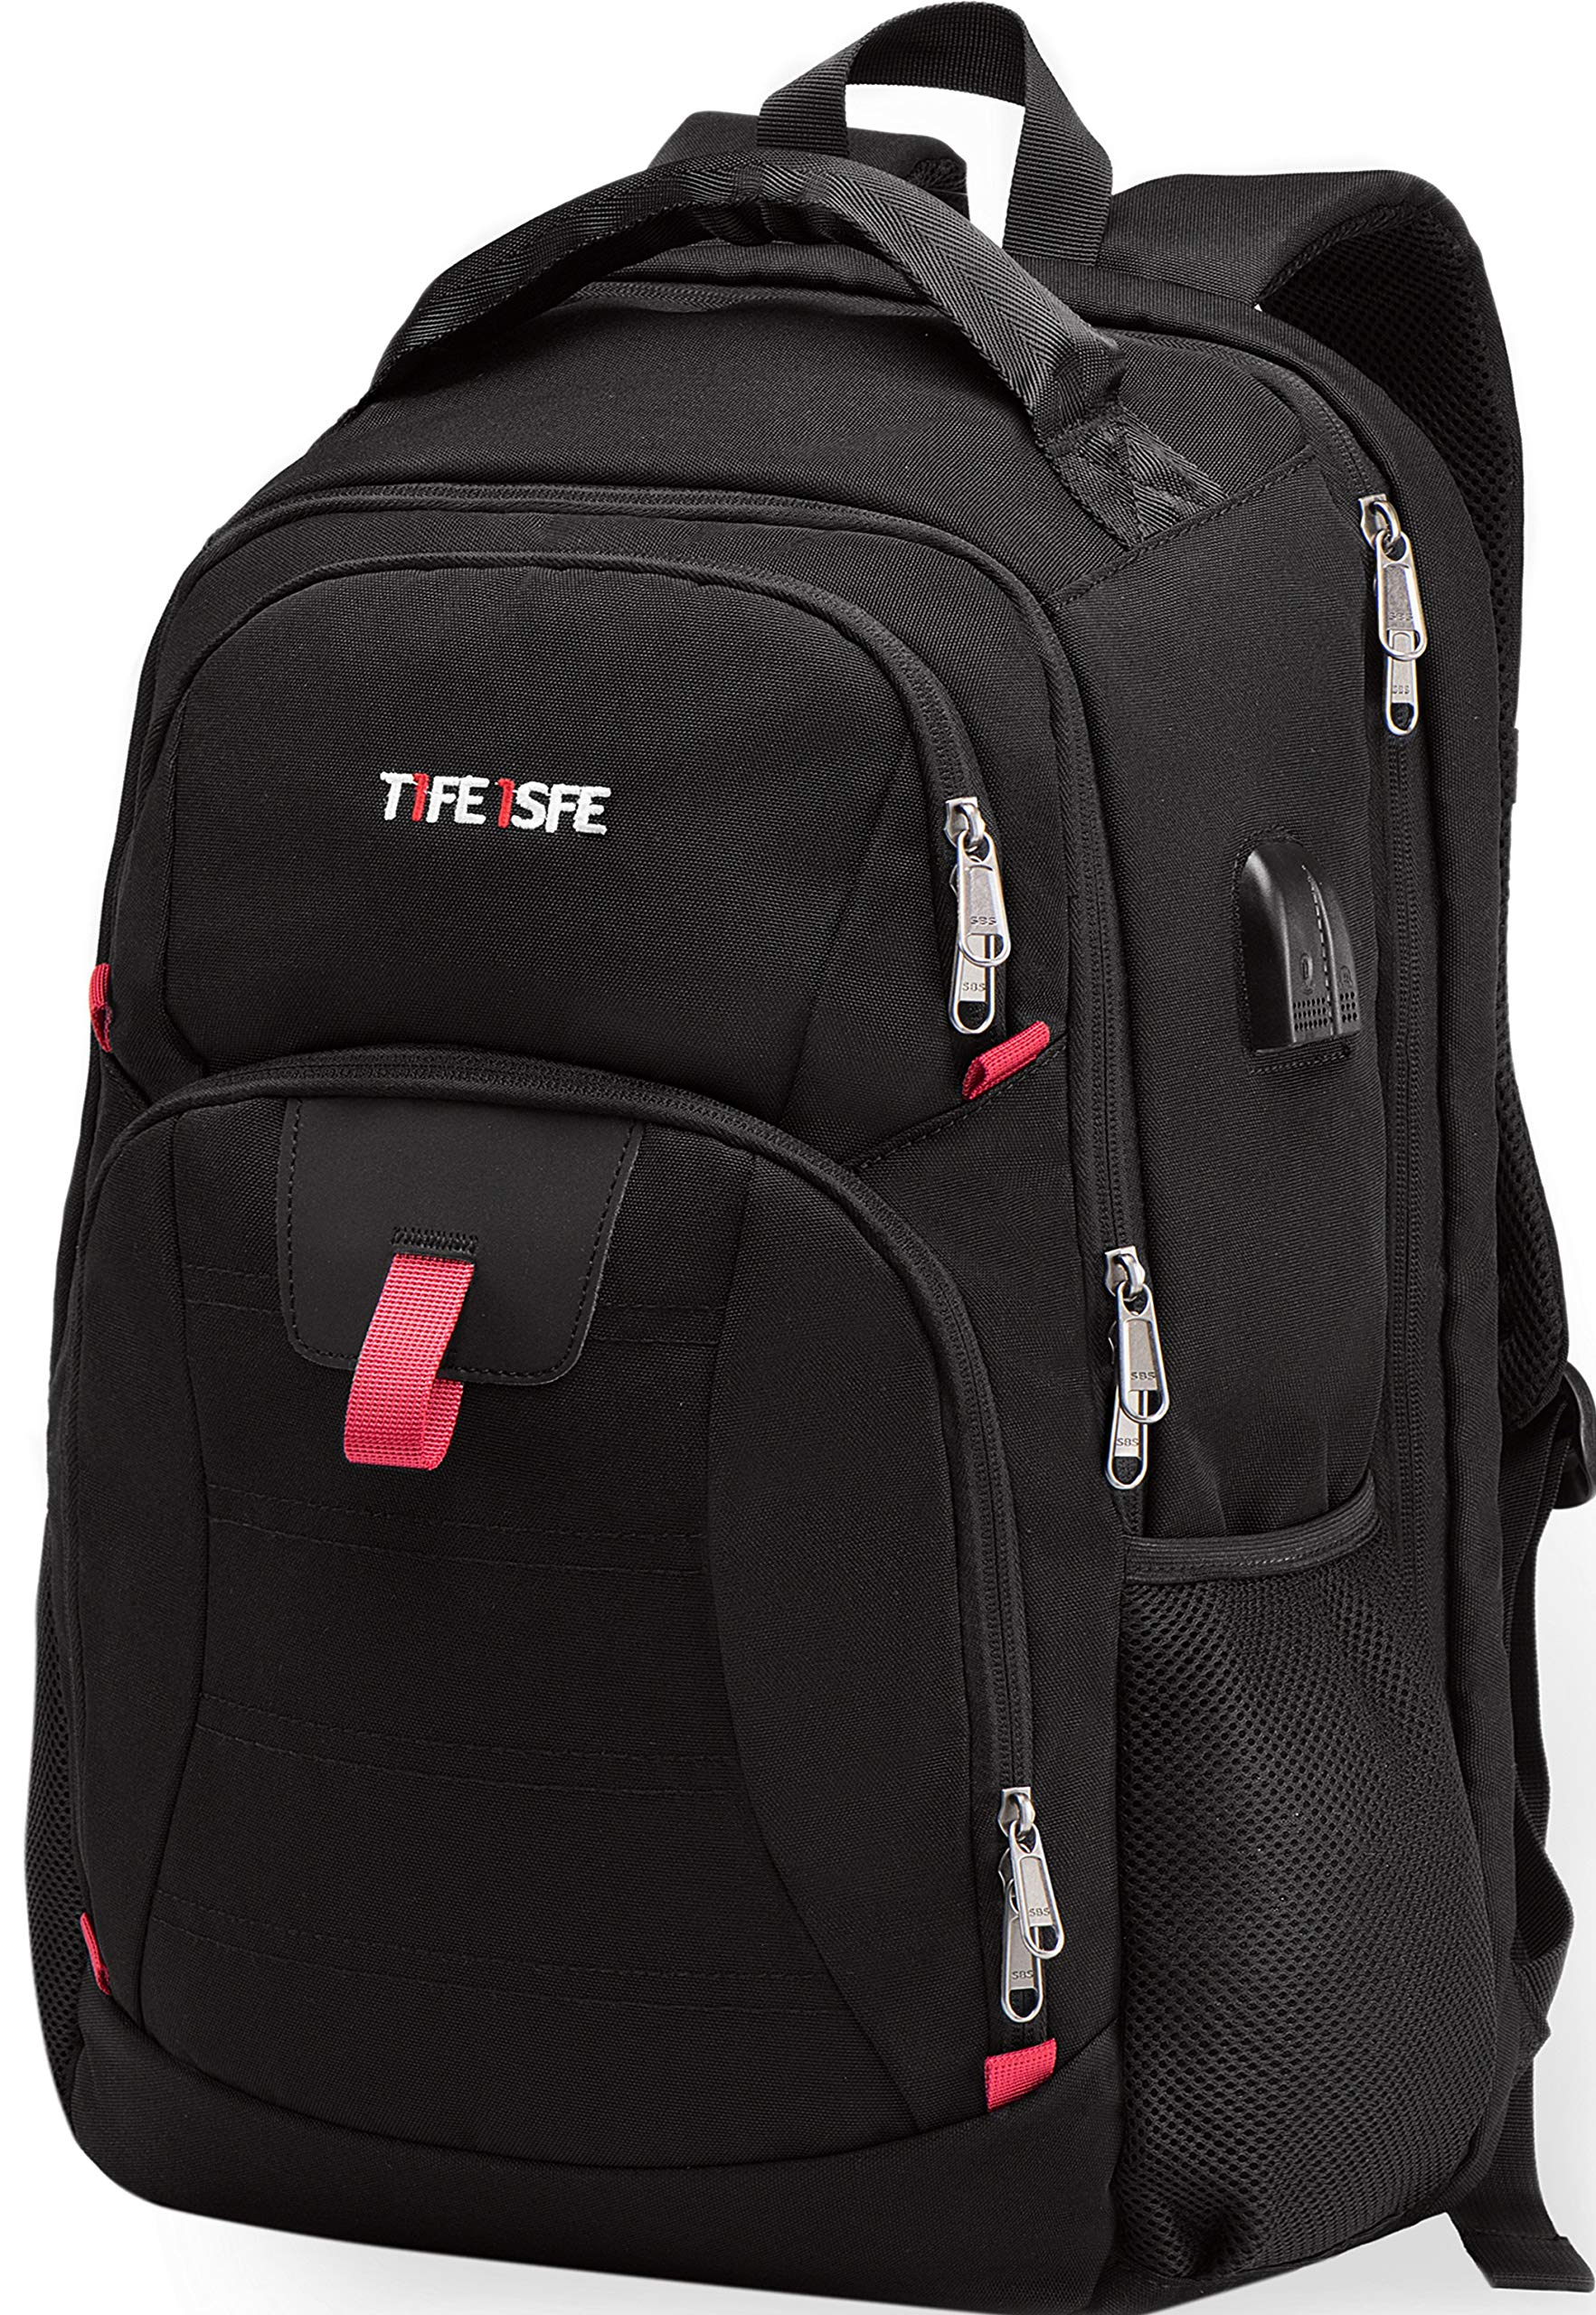 Best backpack dor the price.